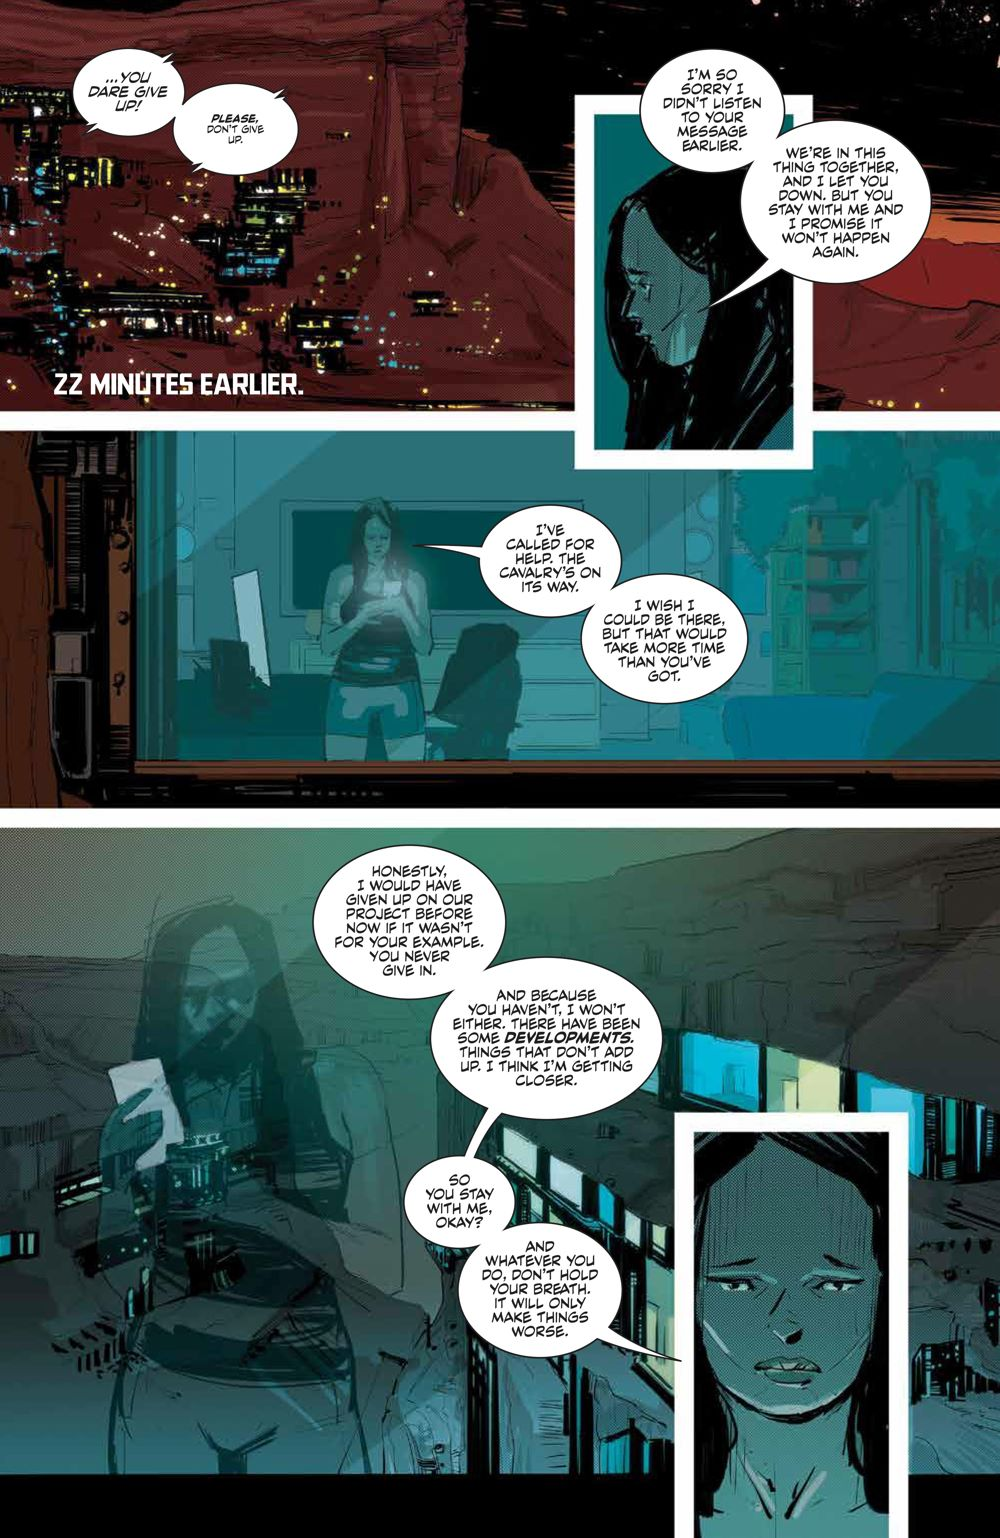 Expanse_003_PRESS_5 ComicList Previews: THE EXPANSE #3 (OF 4)